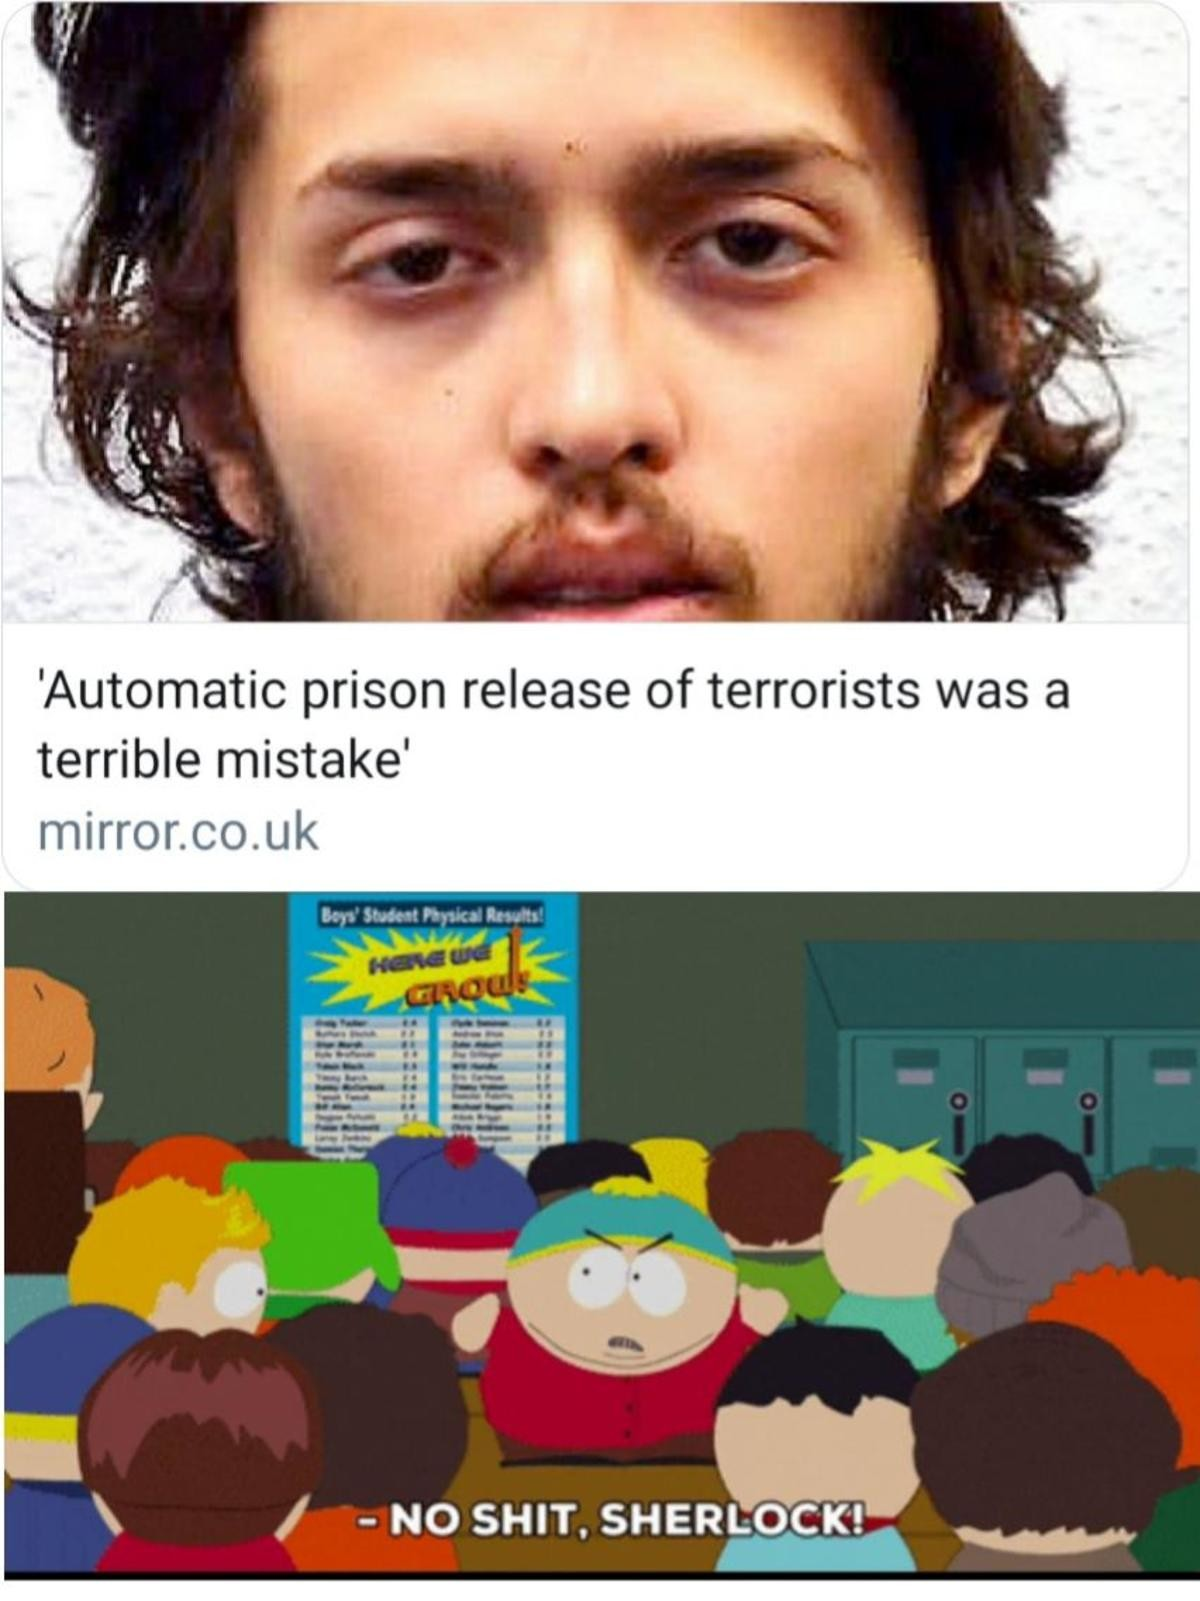 truuu 😂😂😂. .. The UK is releasing terrorists from prisons? Whats next? Letting the abusers of 1400+ children walk free? Oh.... wait.....